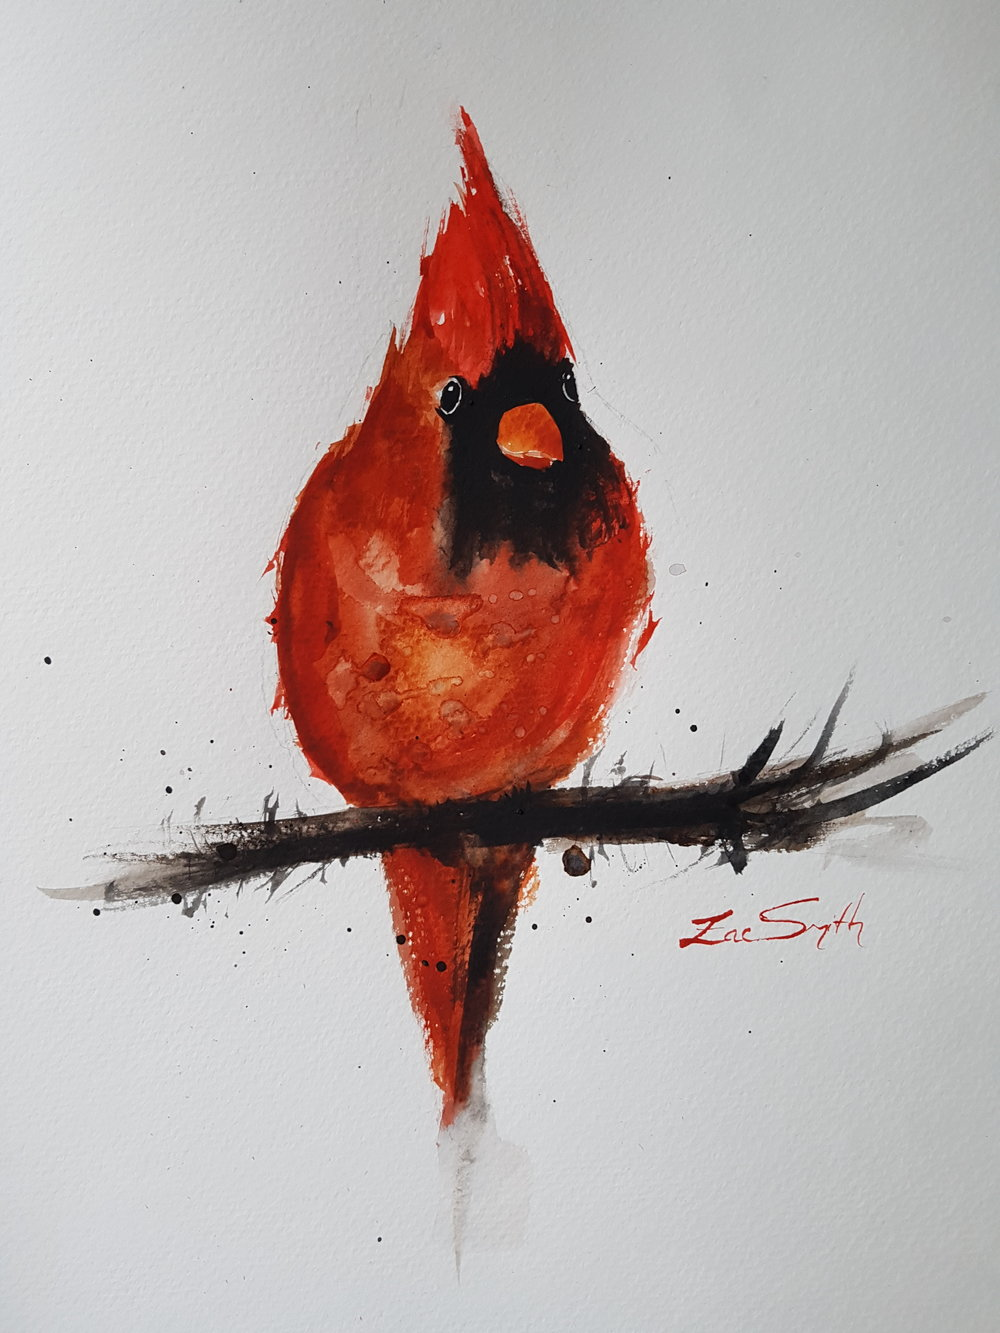 """Nitin's Cardinal"" 14x11.5"" [SOLD]  One of the painters I enjoy watching is Nitin Singh ( link to his YouTube channel ), and this is an exercise I took from one of his videos."